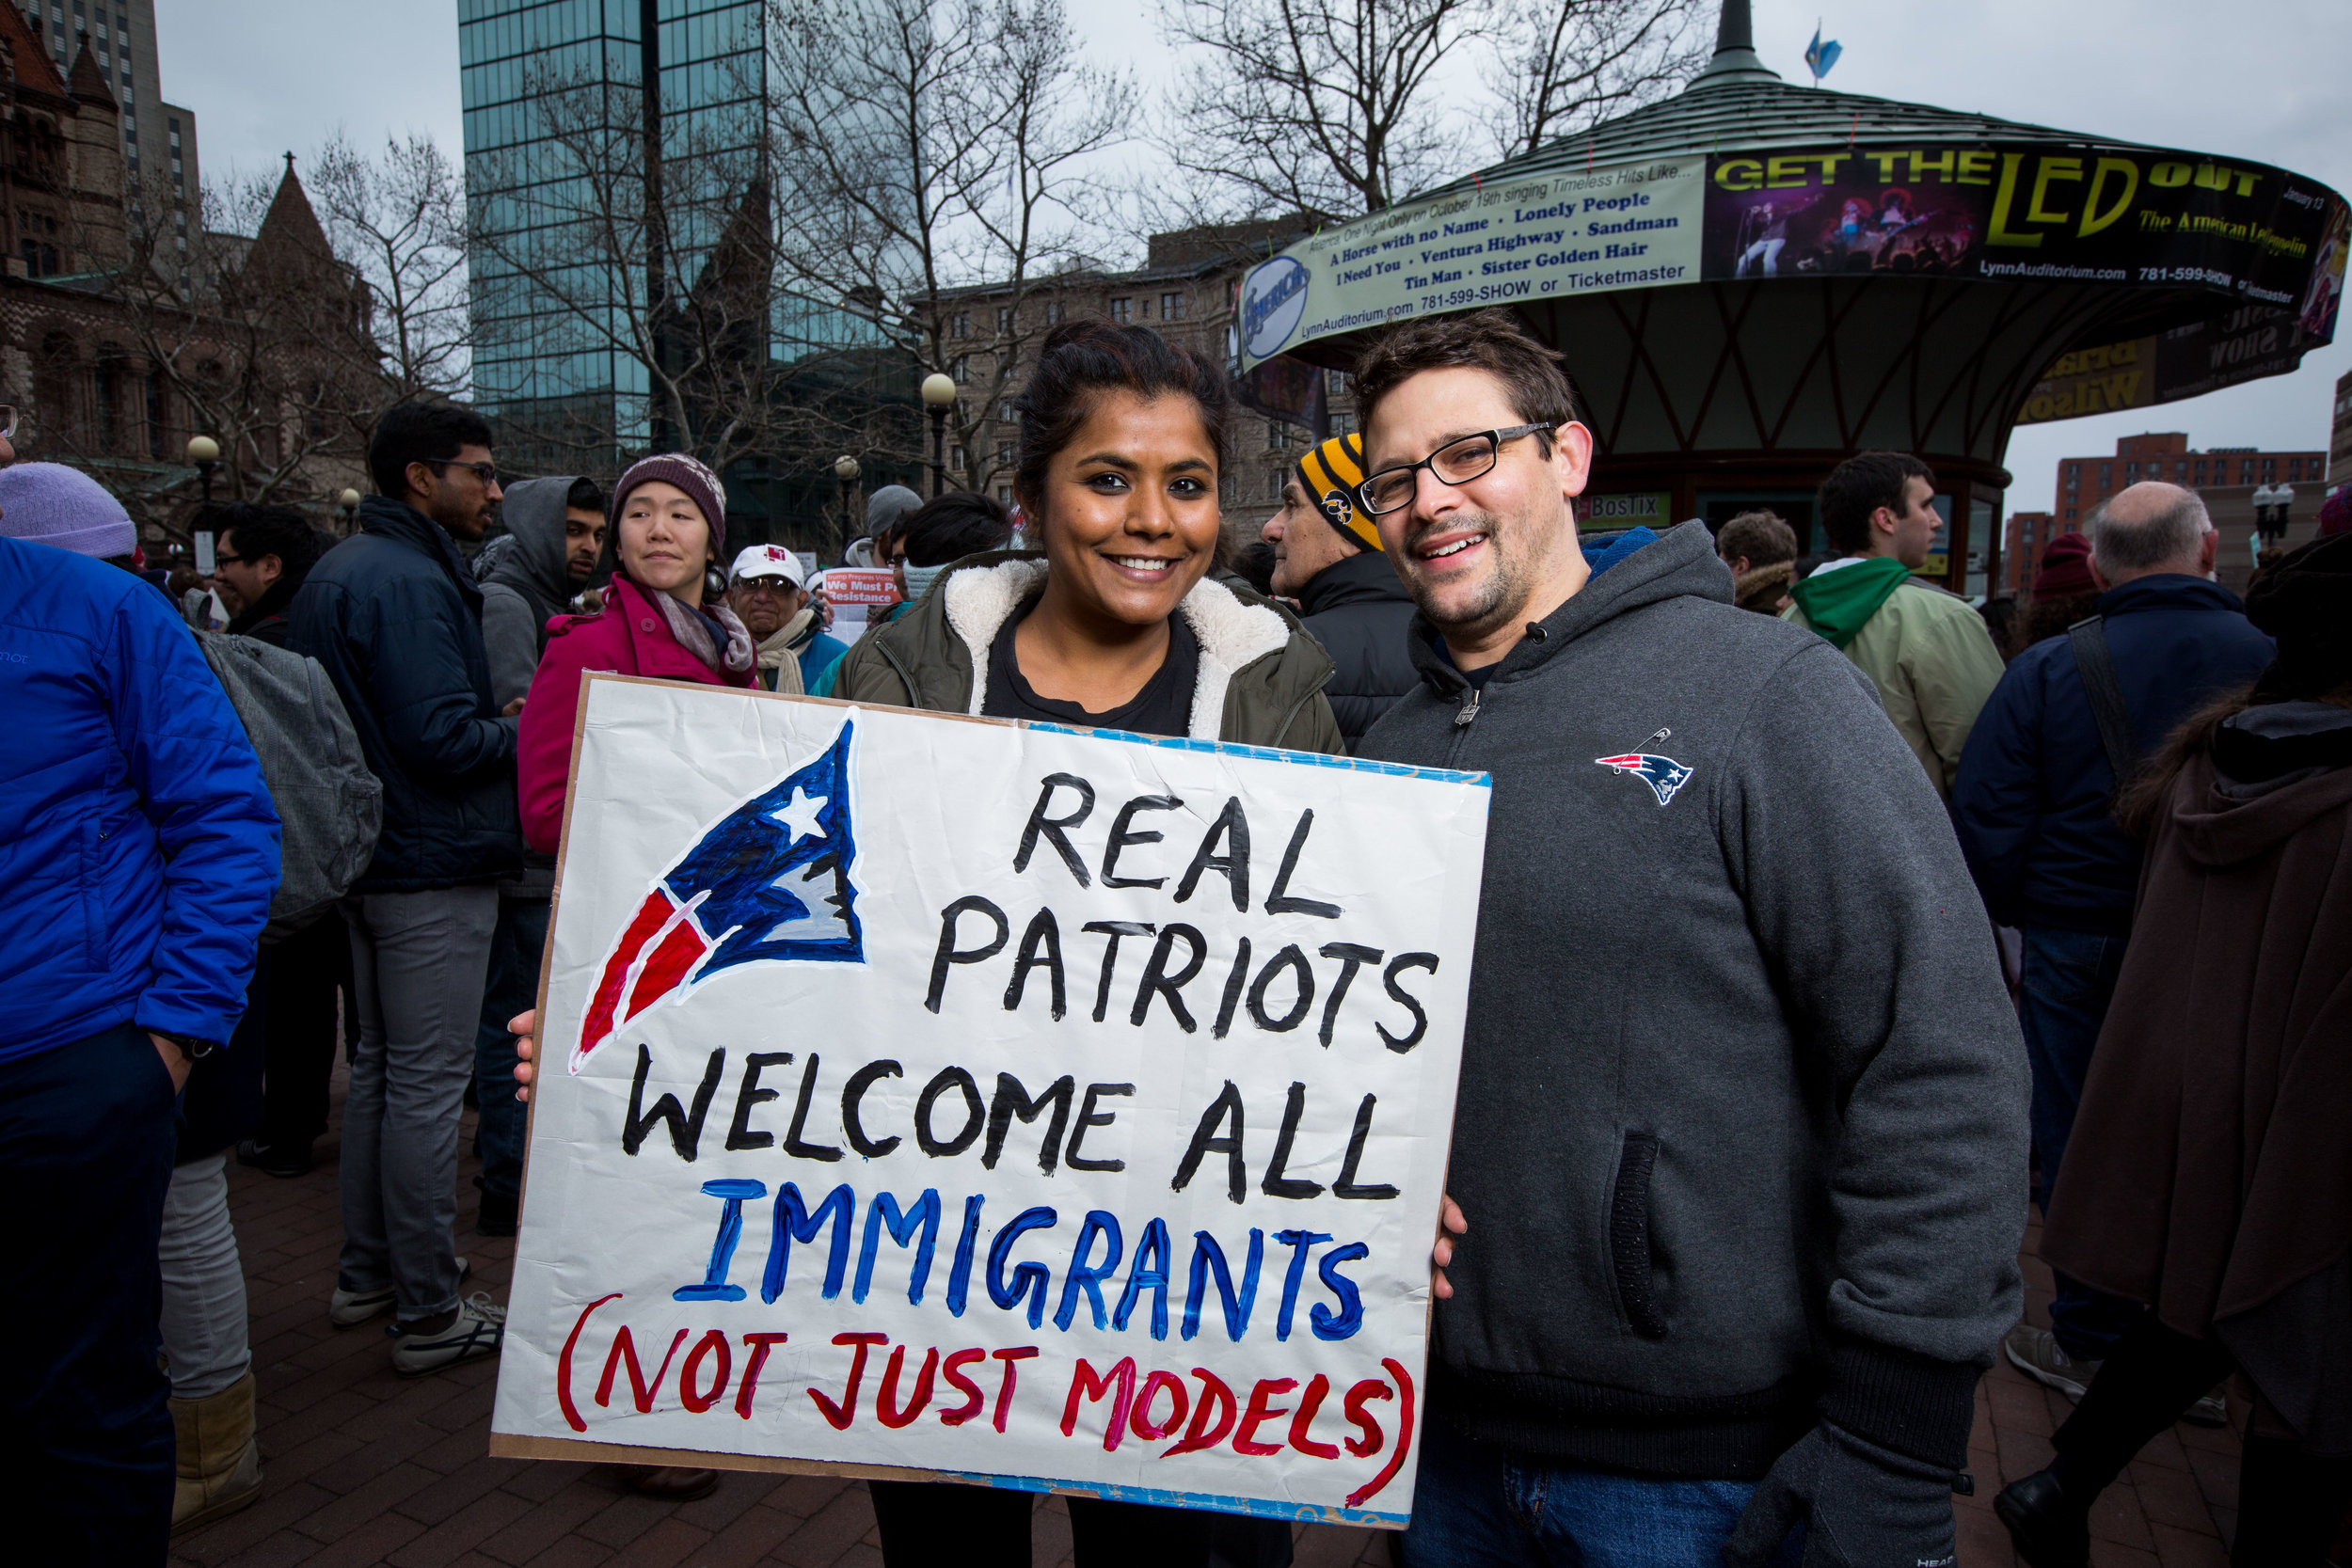 """MARK & ARCHANA    Mark - """"We want people who believe that immigrants are a threat, to realize that immigrants have real allies here in Boston."""""""